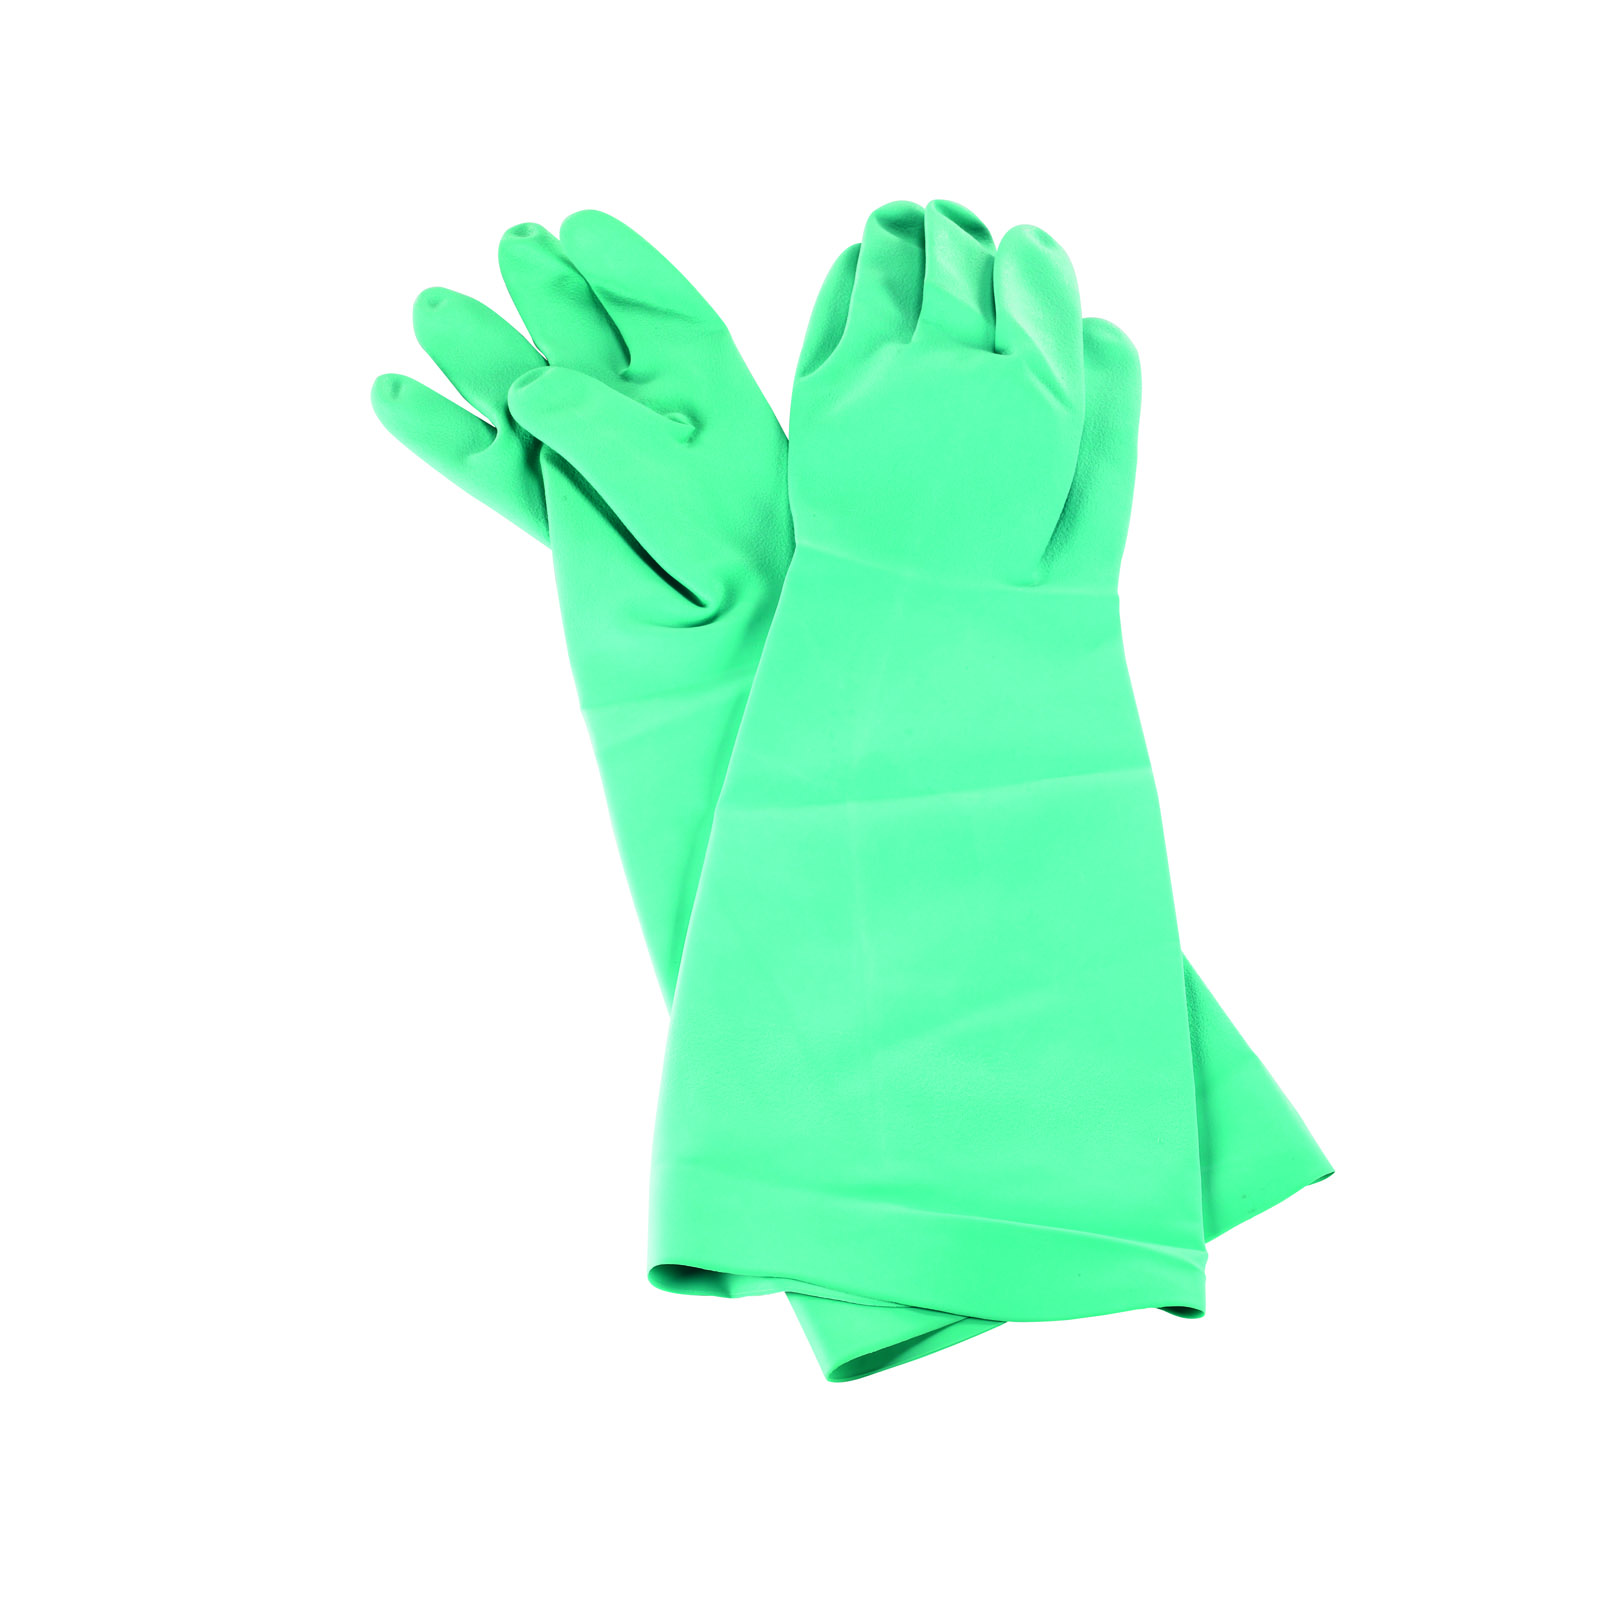 San Jamar 19NU-L gloves, dishwashing / cleaning